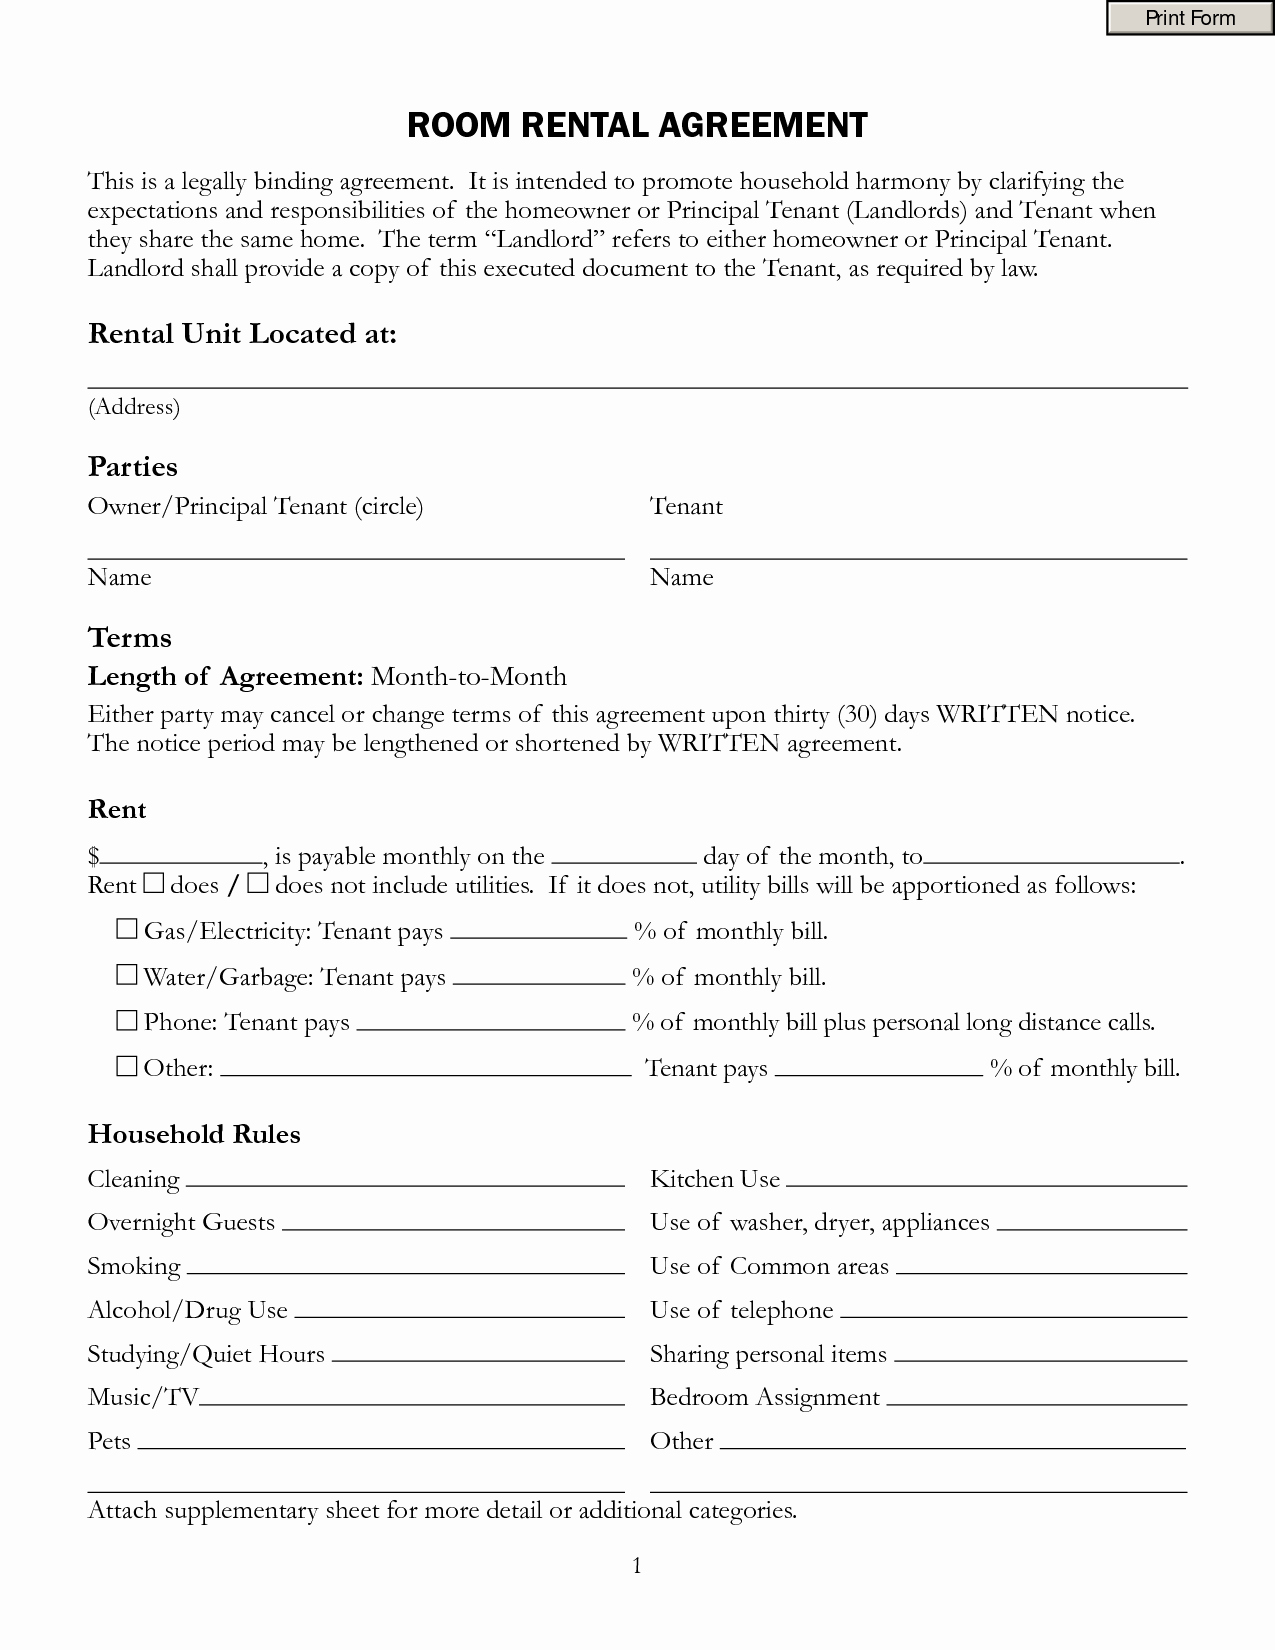 Top 5 Resources to Get Free Rental Agreement Templates